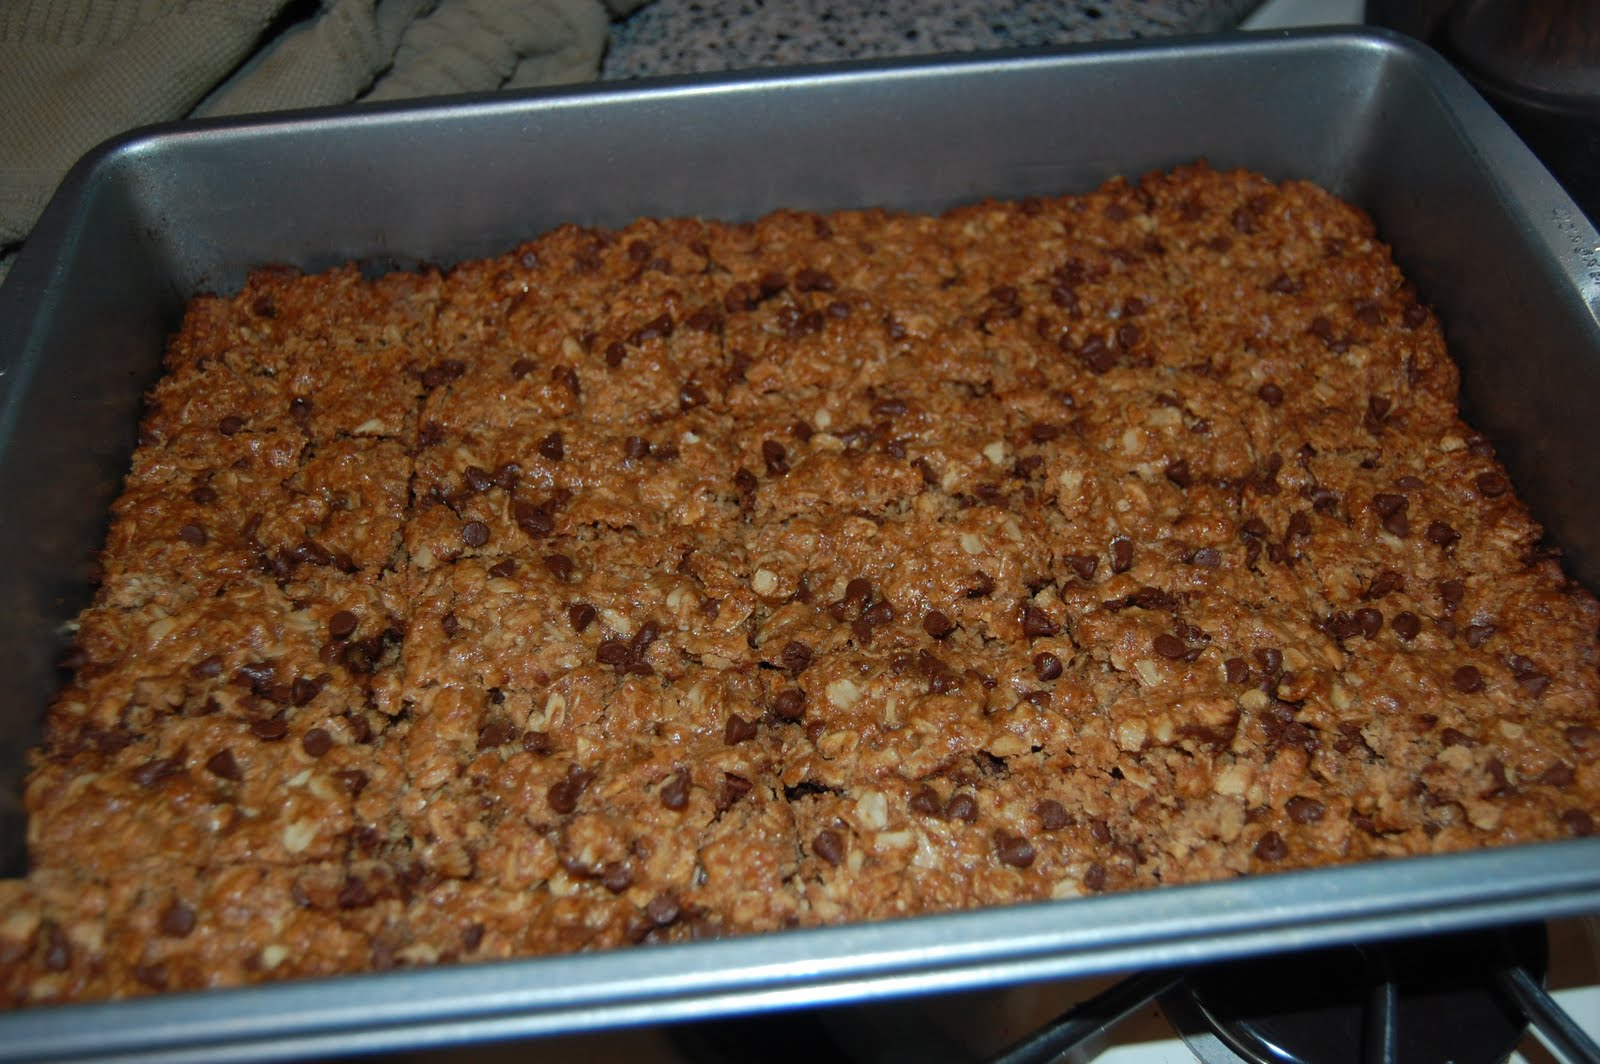 We Are Family: New Recipe - Week 1: Playgroup Granola Bars